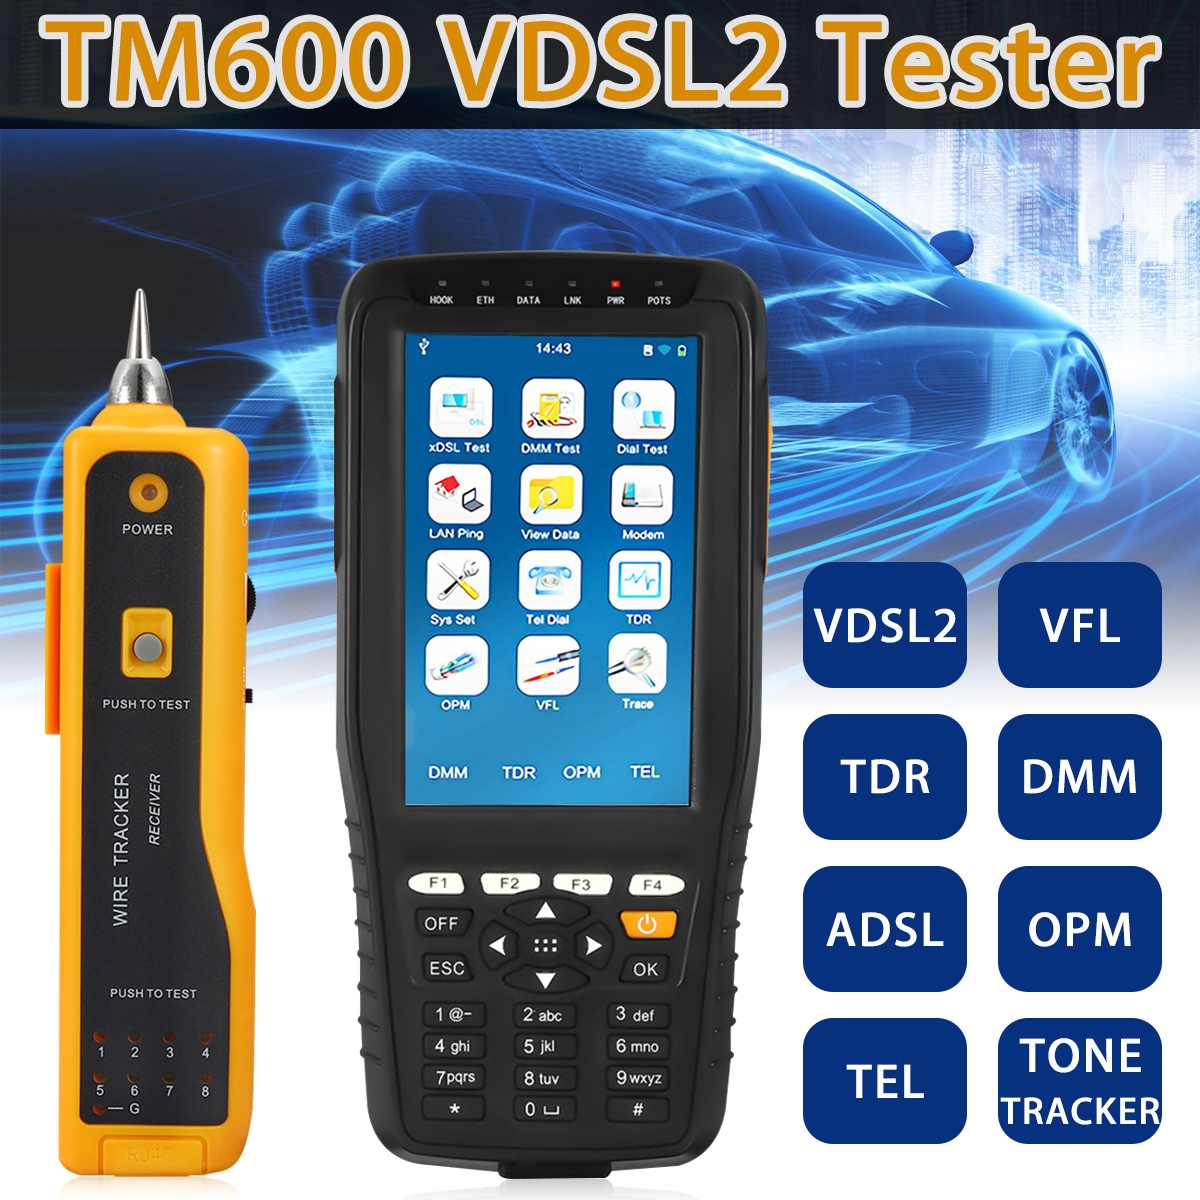 TM-600 VDSL VDSL2 Tester ADSL WAN LAN Tester XDSL Line Test Equipment With All Functions DSL Physical Layer Test